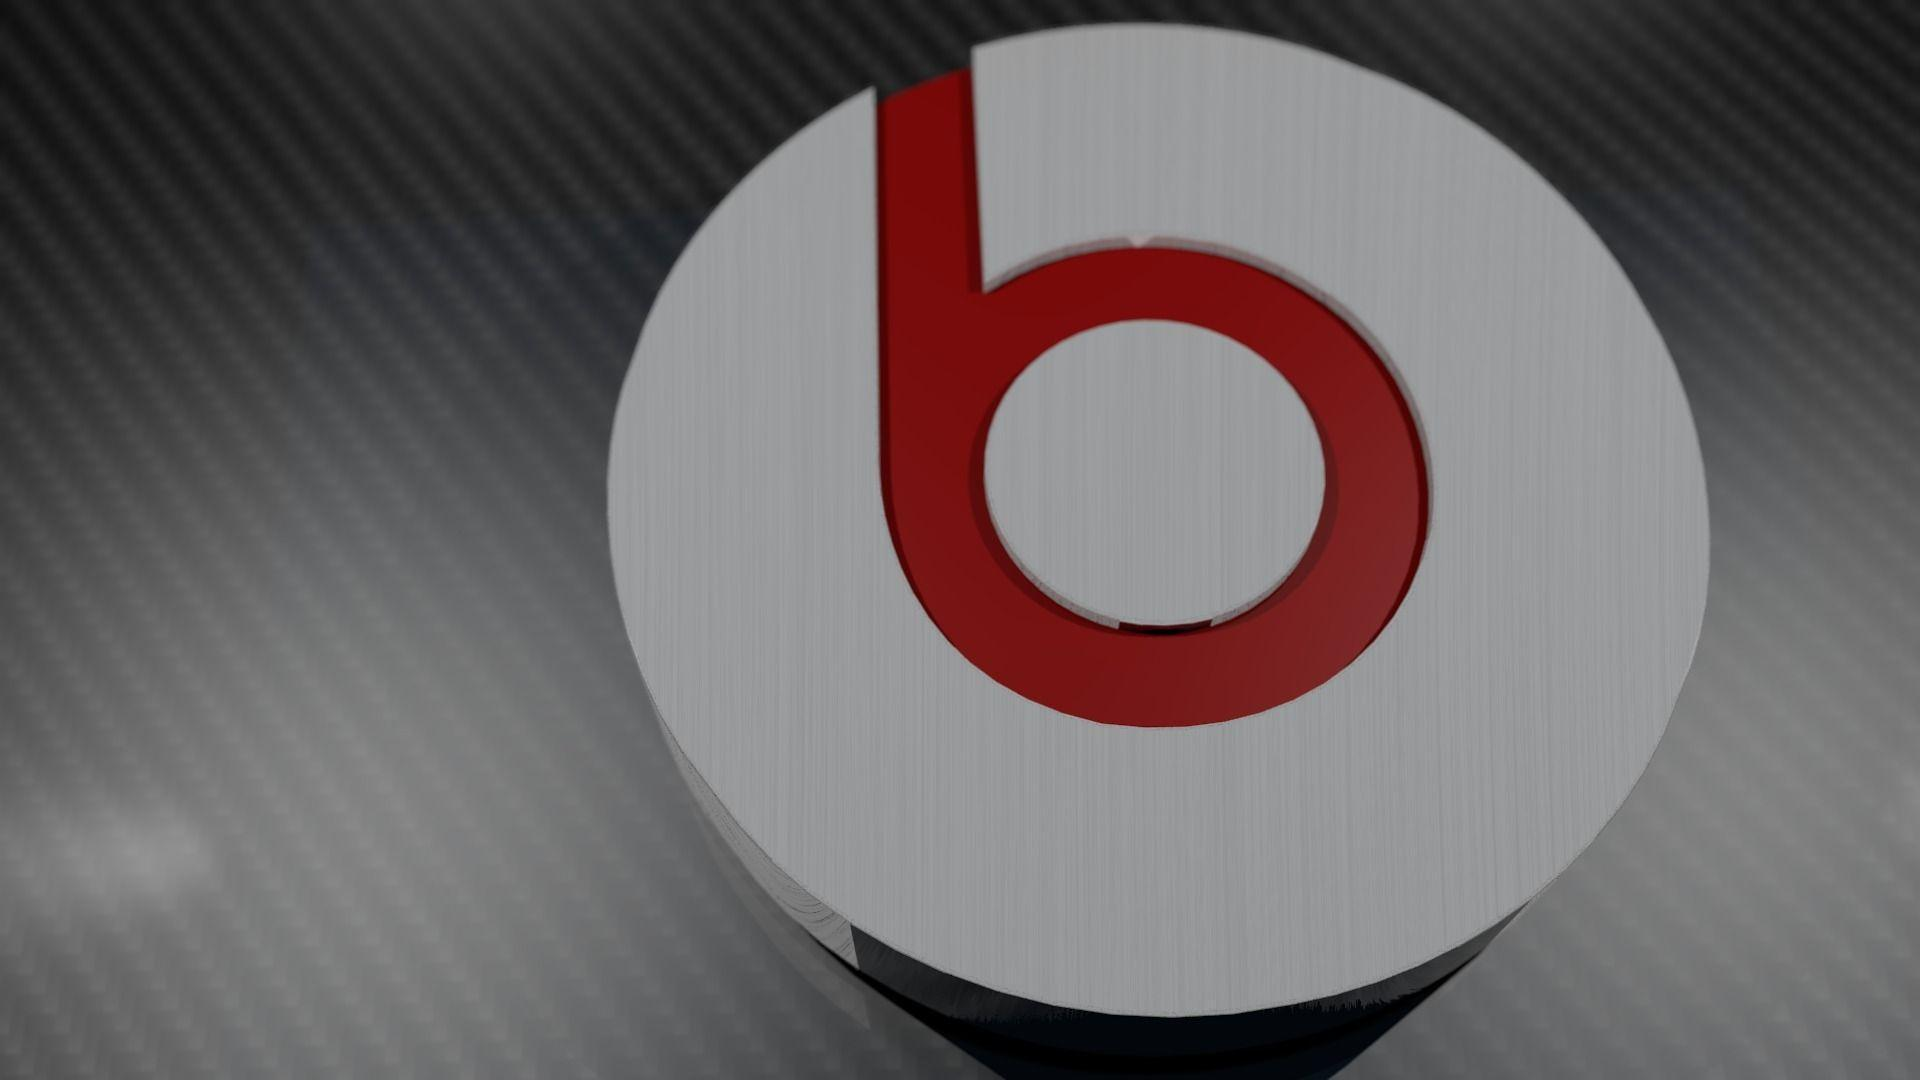 Beats Audio By Dr Dre High Quality Wallpaper Gallery Full HD